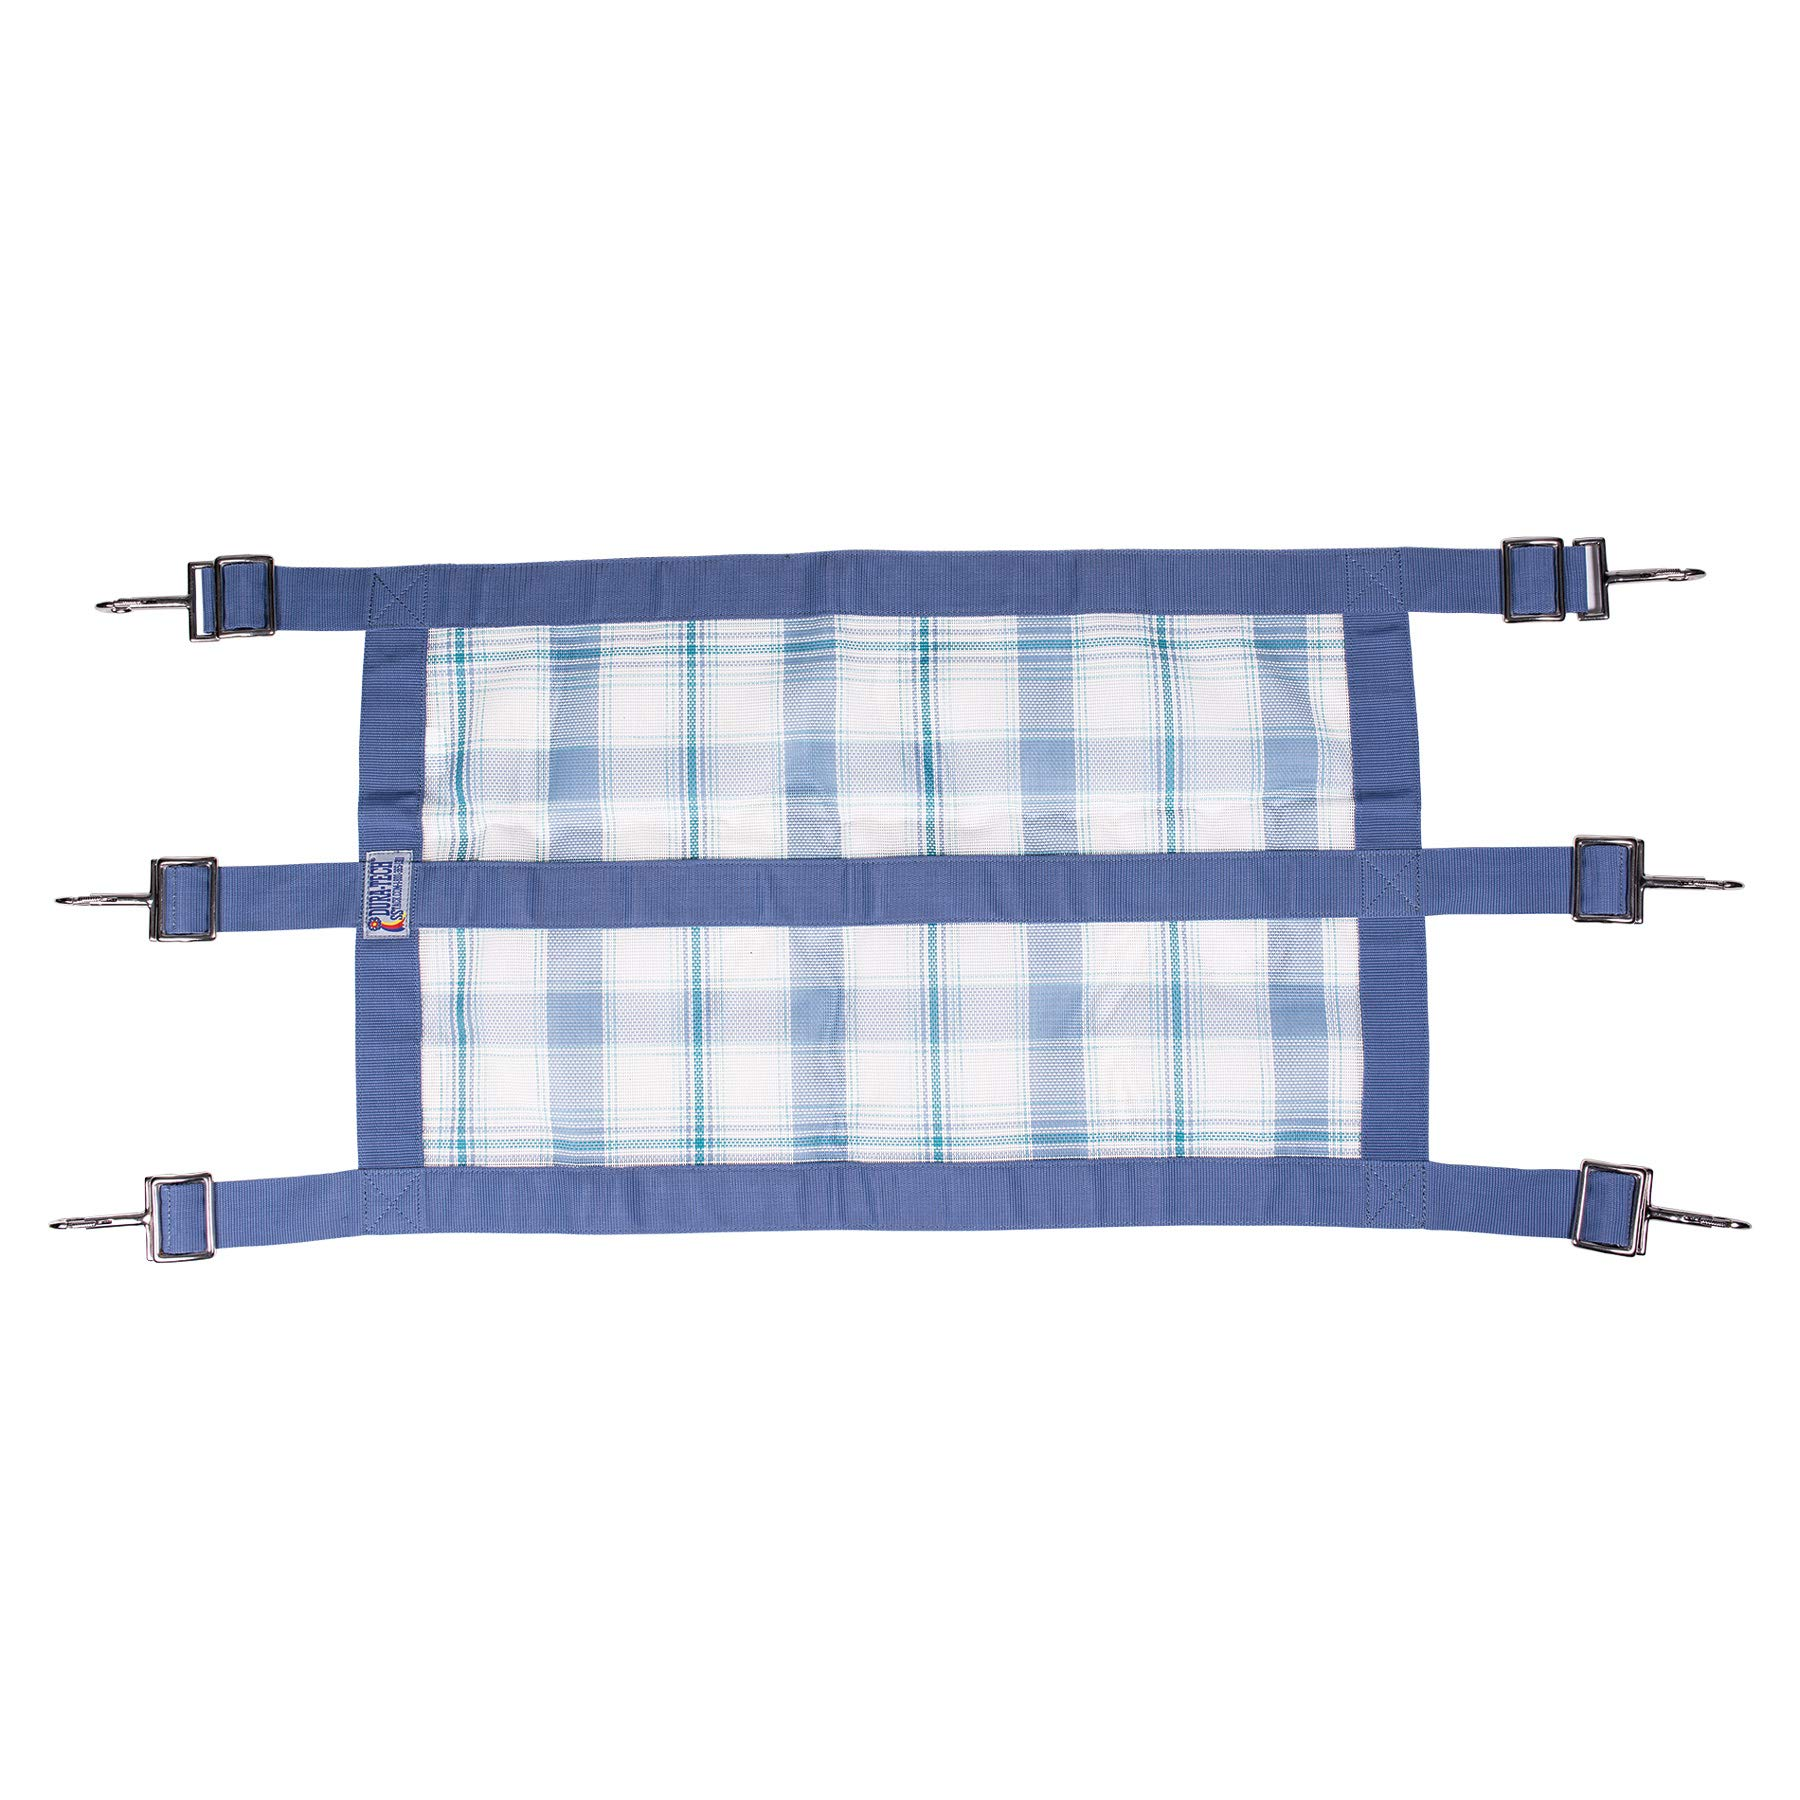 Dura-Tech Deluxe Dura-Mesh Stall Guard (Blue)